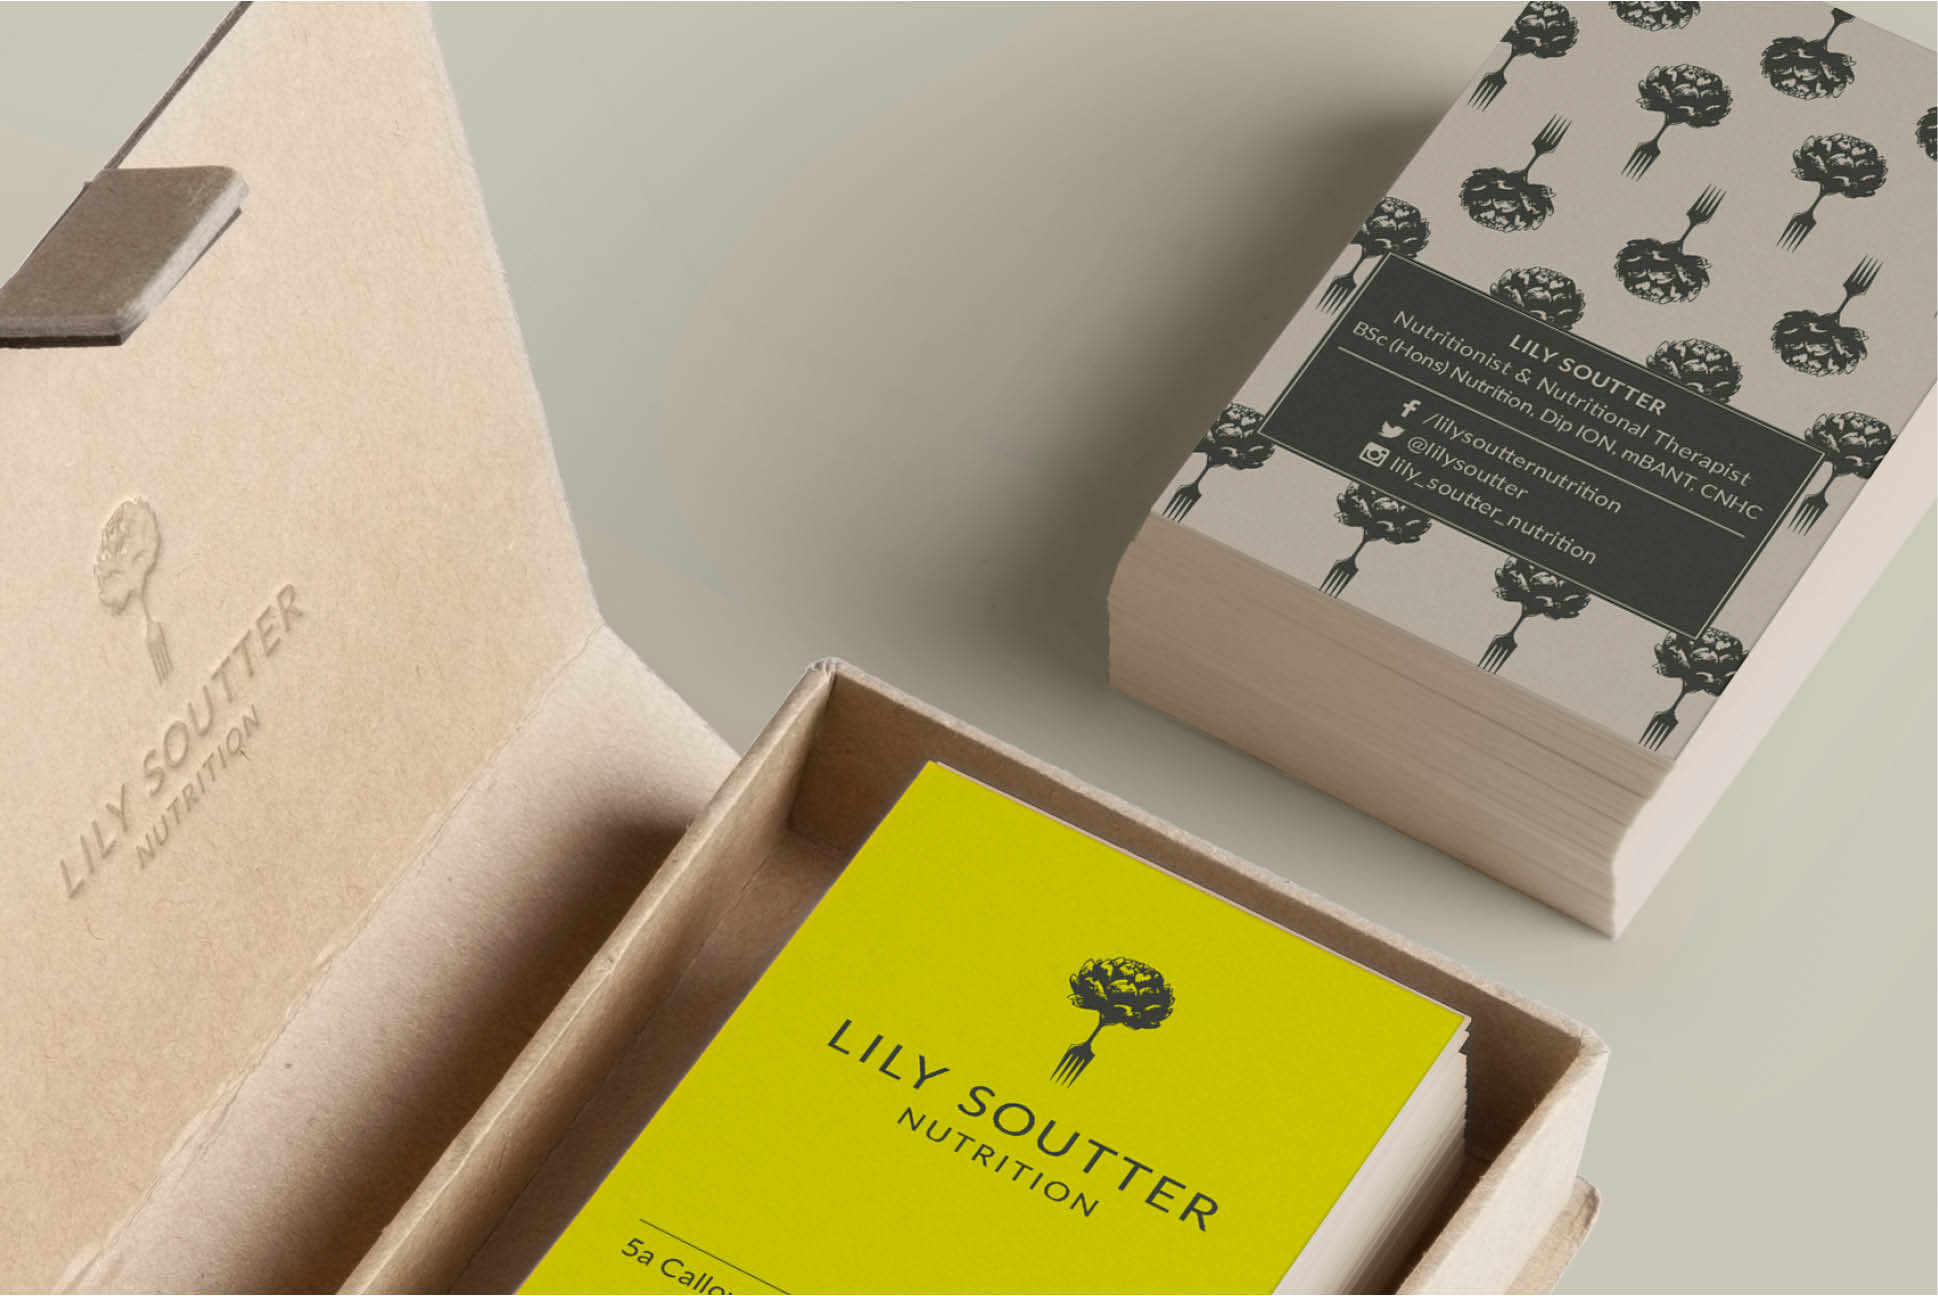 Lily Soutter Business Cards